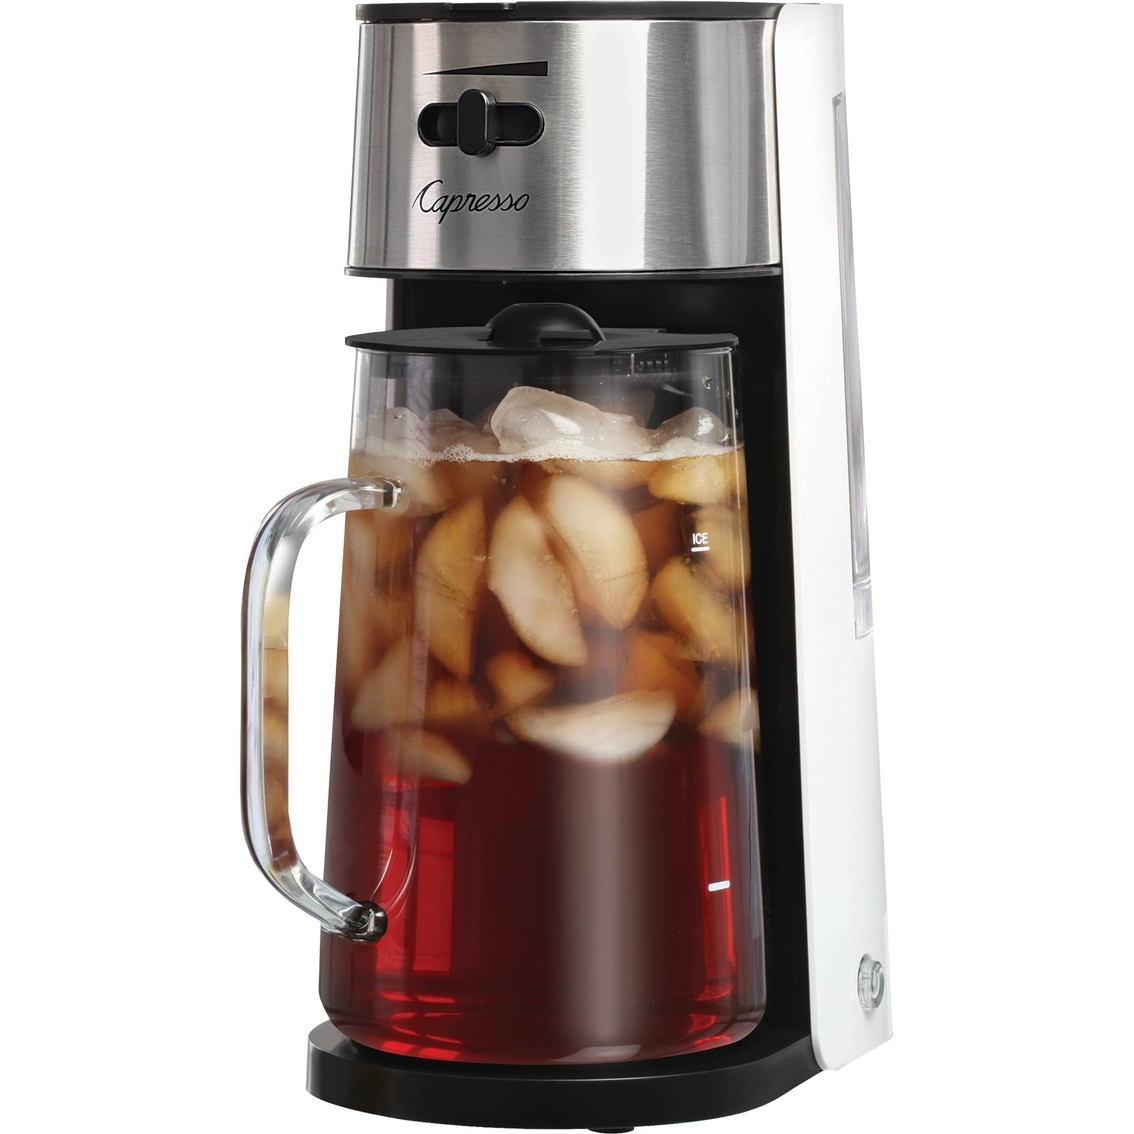 Coffee Maker The Sweet Home : Capresso Iced Tea Maker Tea Makers & Kettles Home & Appliances Shop The Exchange